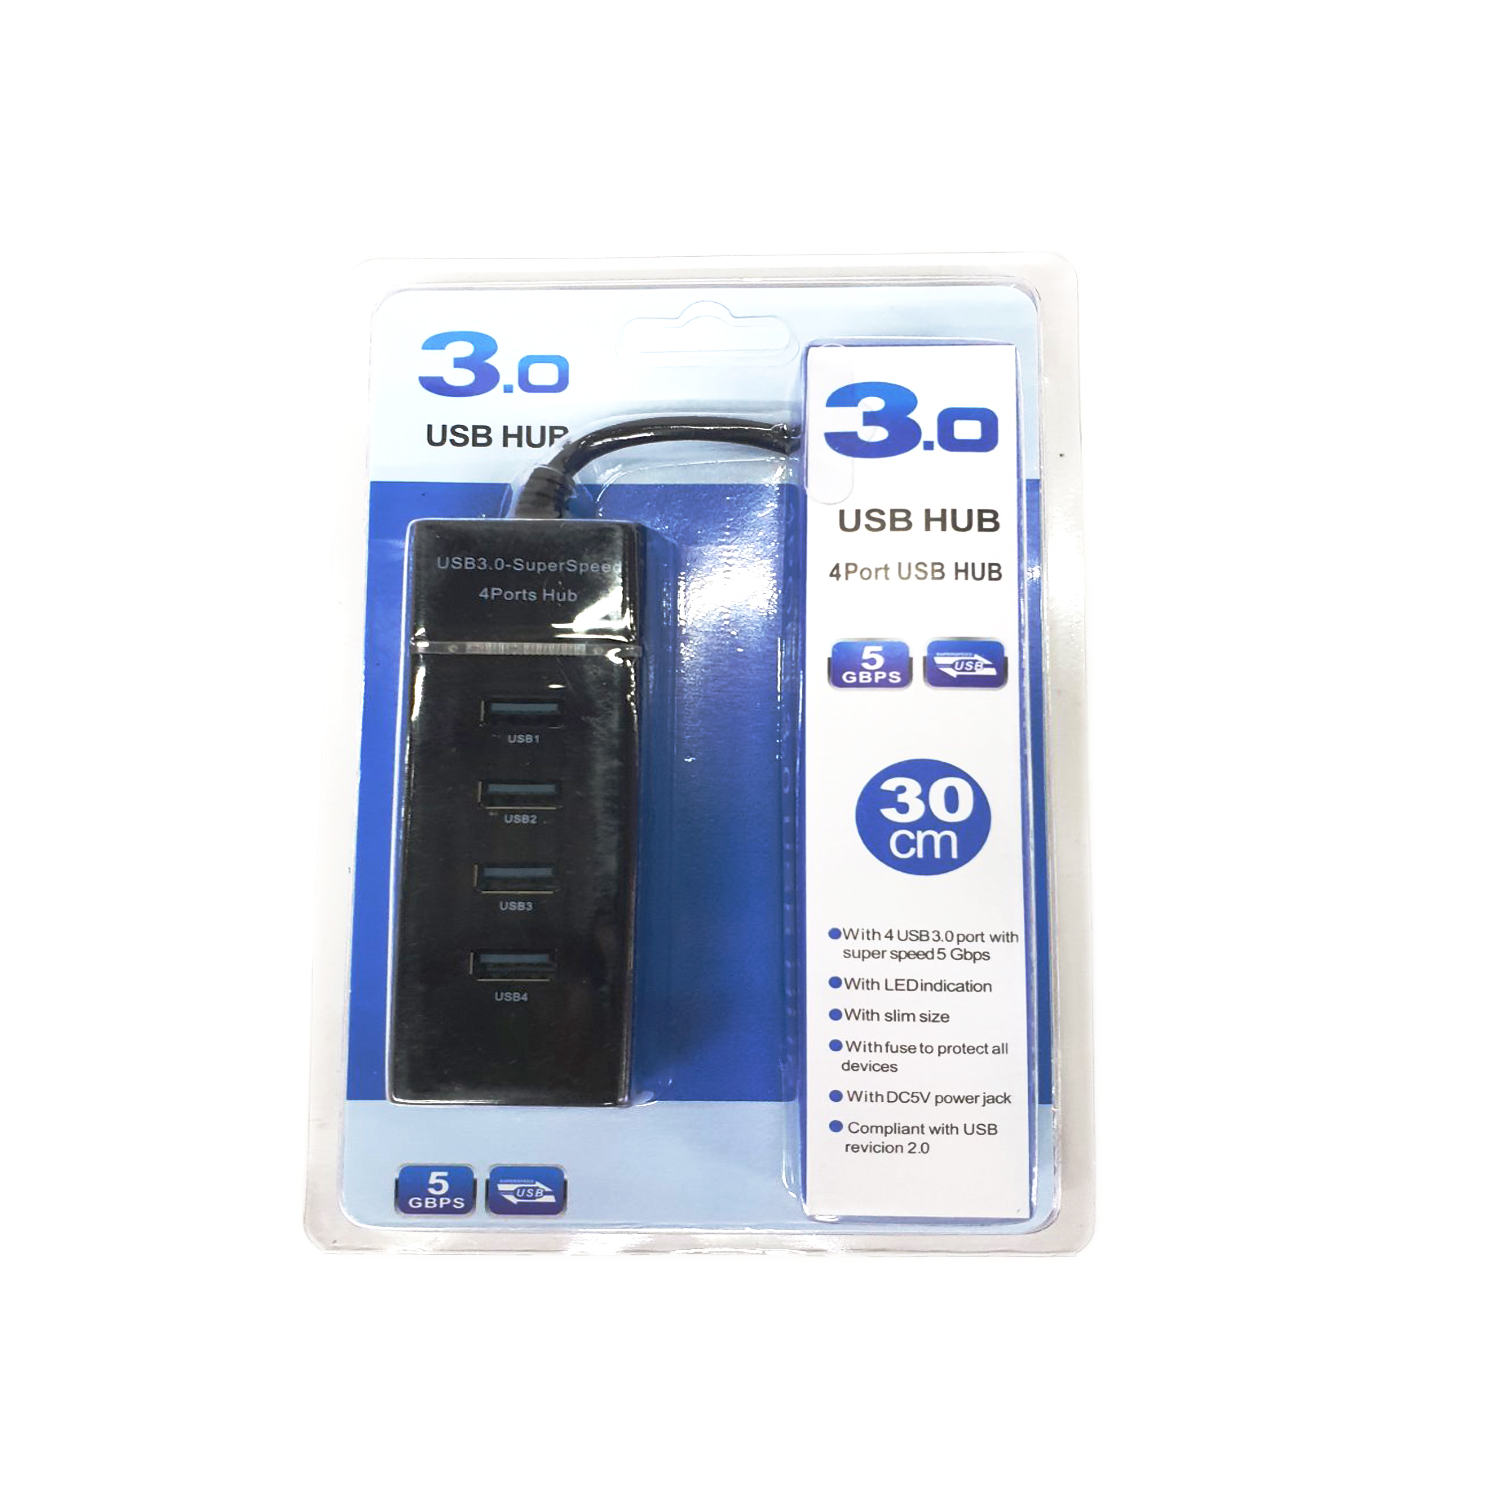 Multi Charger 4 Port USB HUB #31908.0580.21